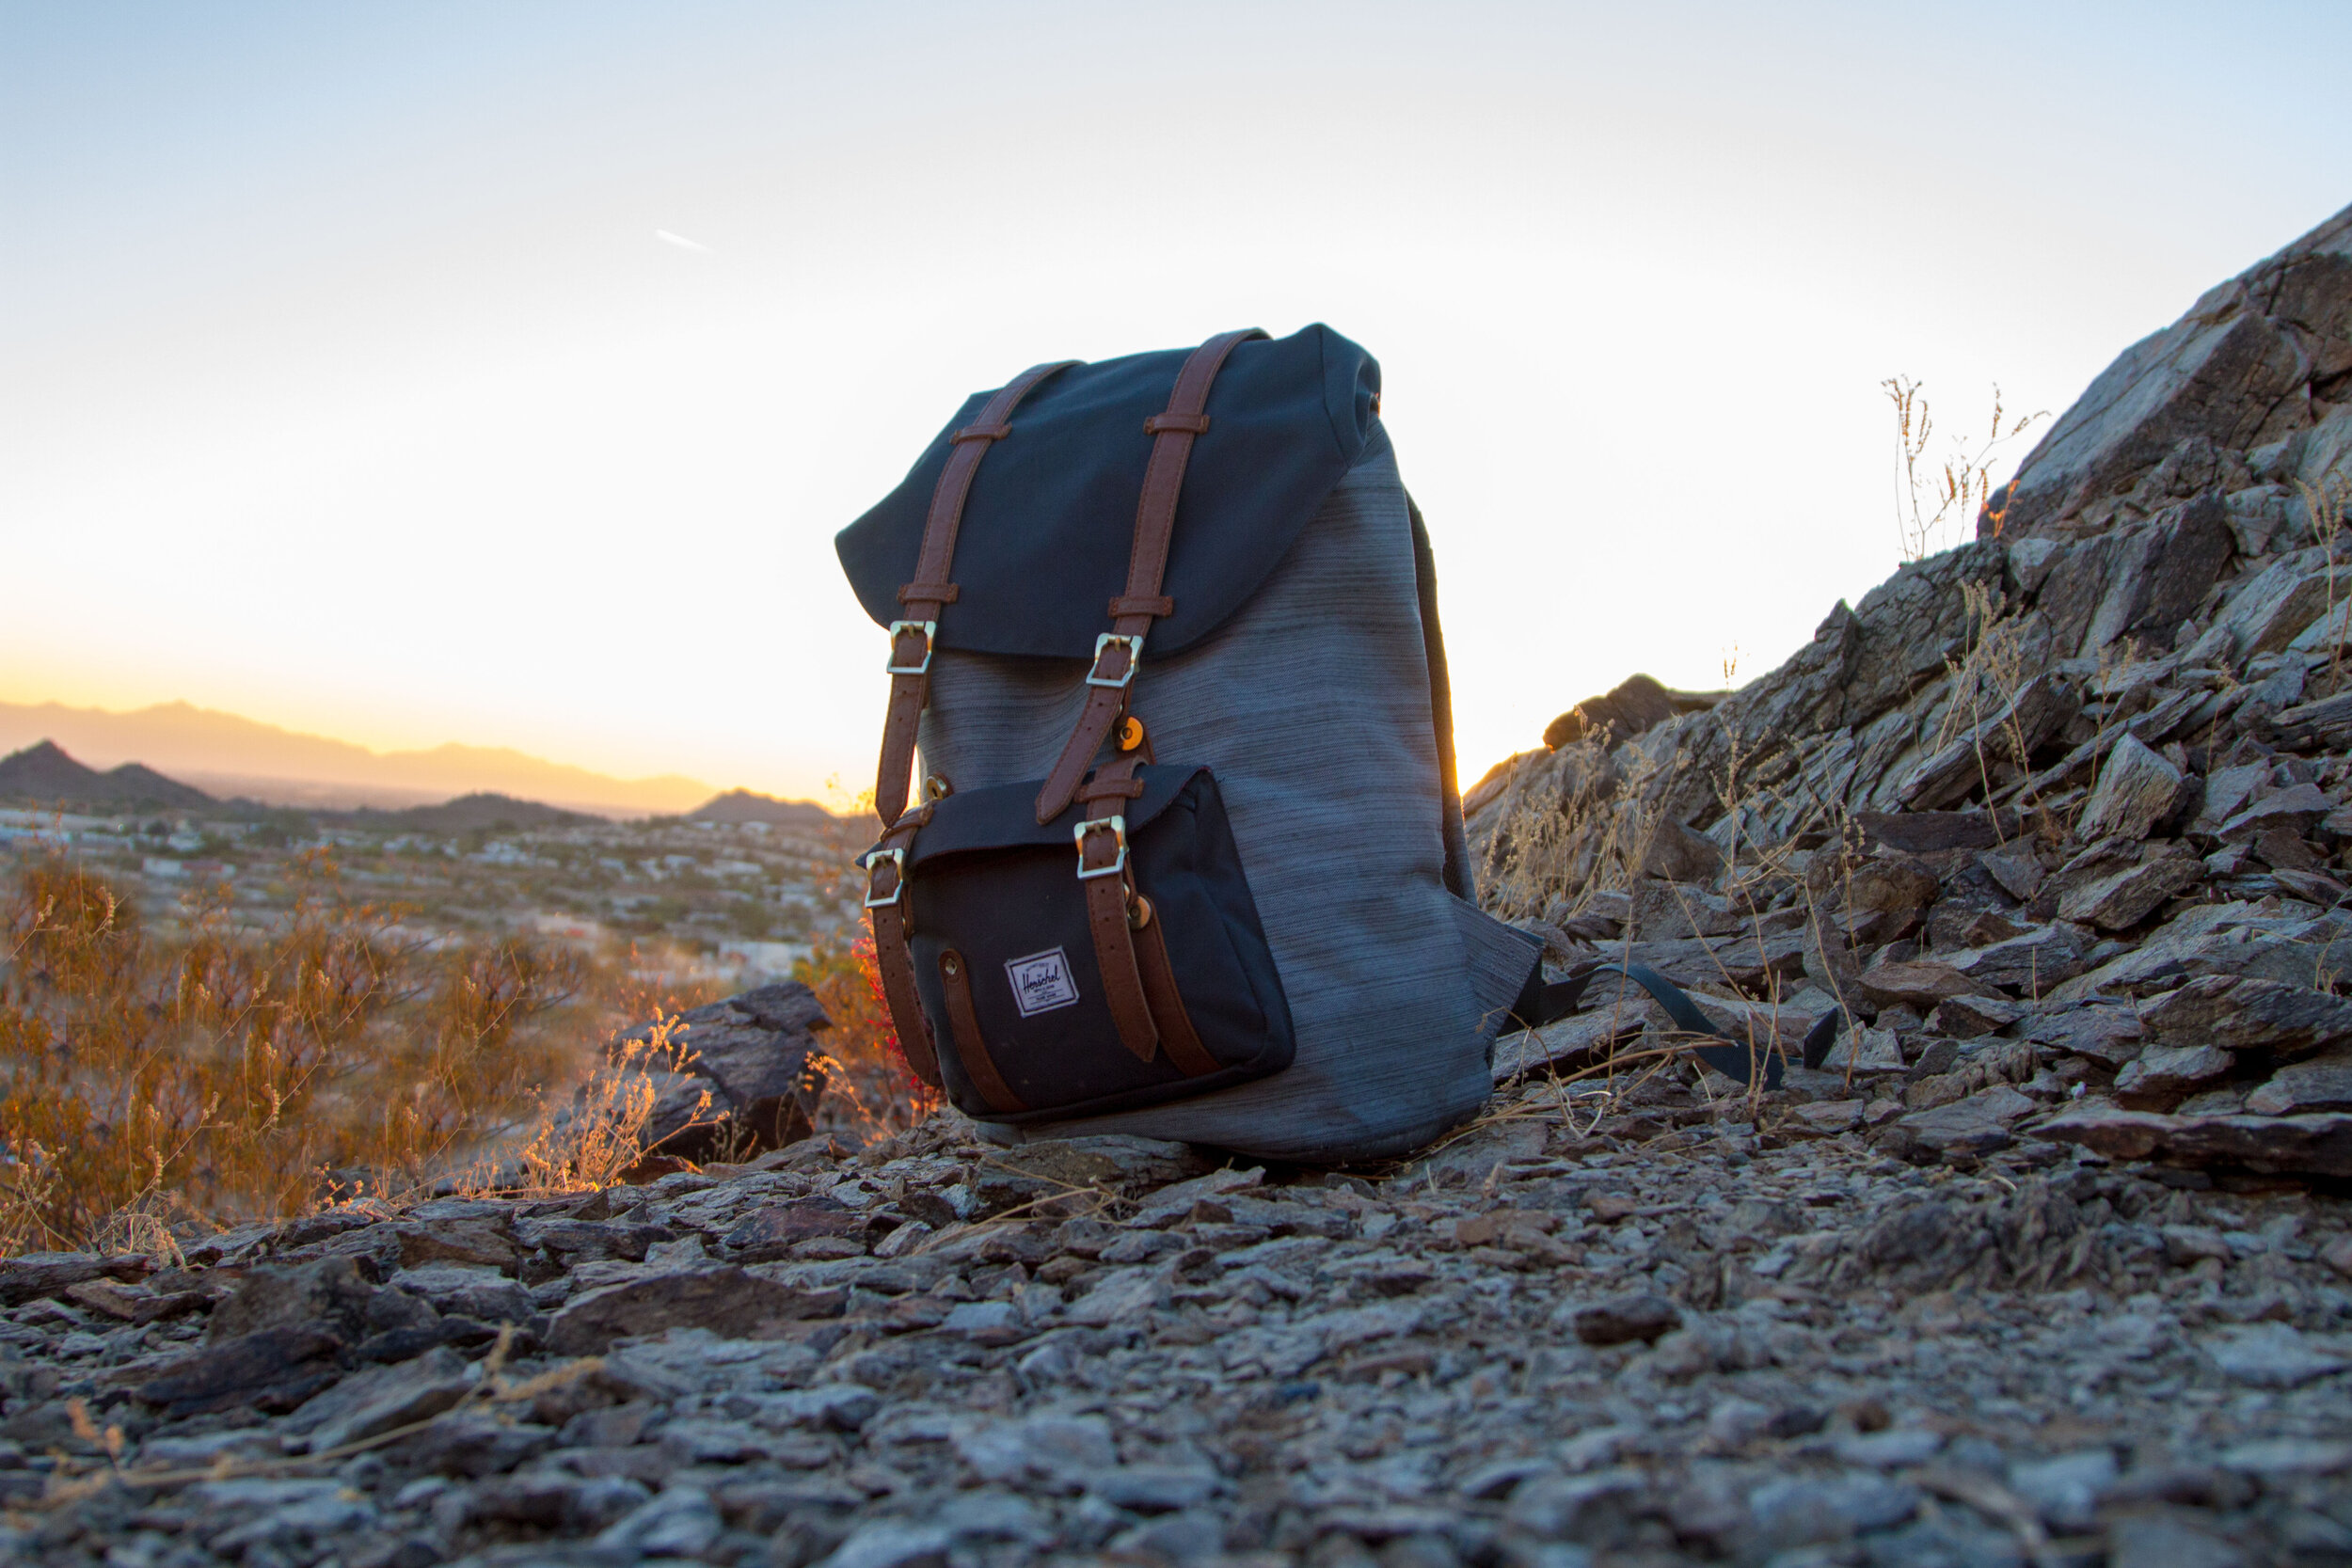 Another problem you can solve using dynamic programming: Calculate the optimum combination of items you can include in a knapsack by the knapsack's weight capacity.